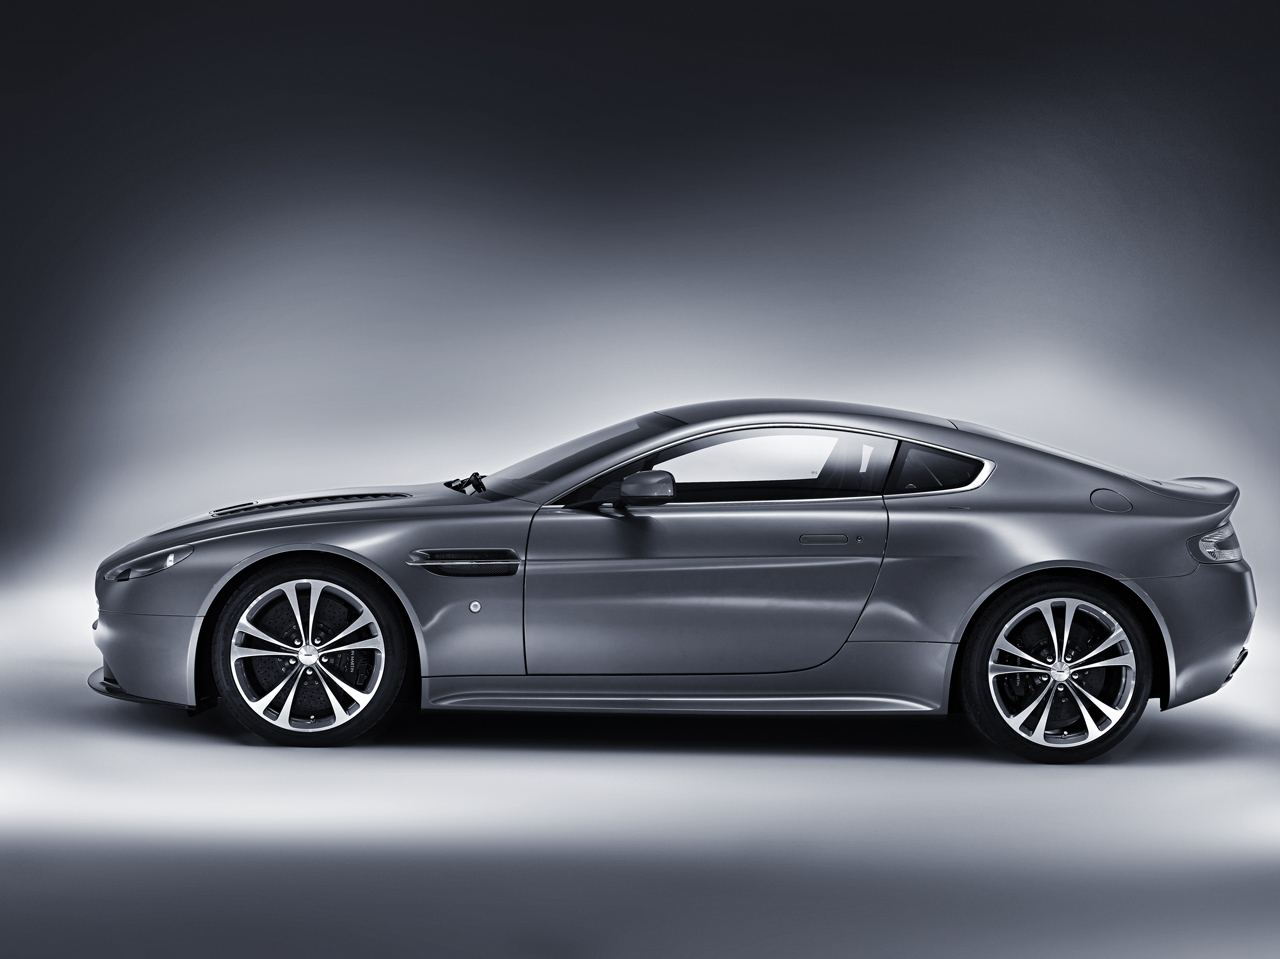 vantage – Automobile Wallpapers in, HD | Iphone | Android| Desktop 3 Wallpaper